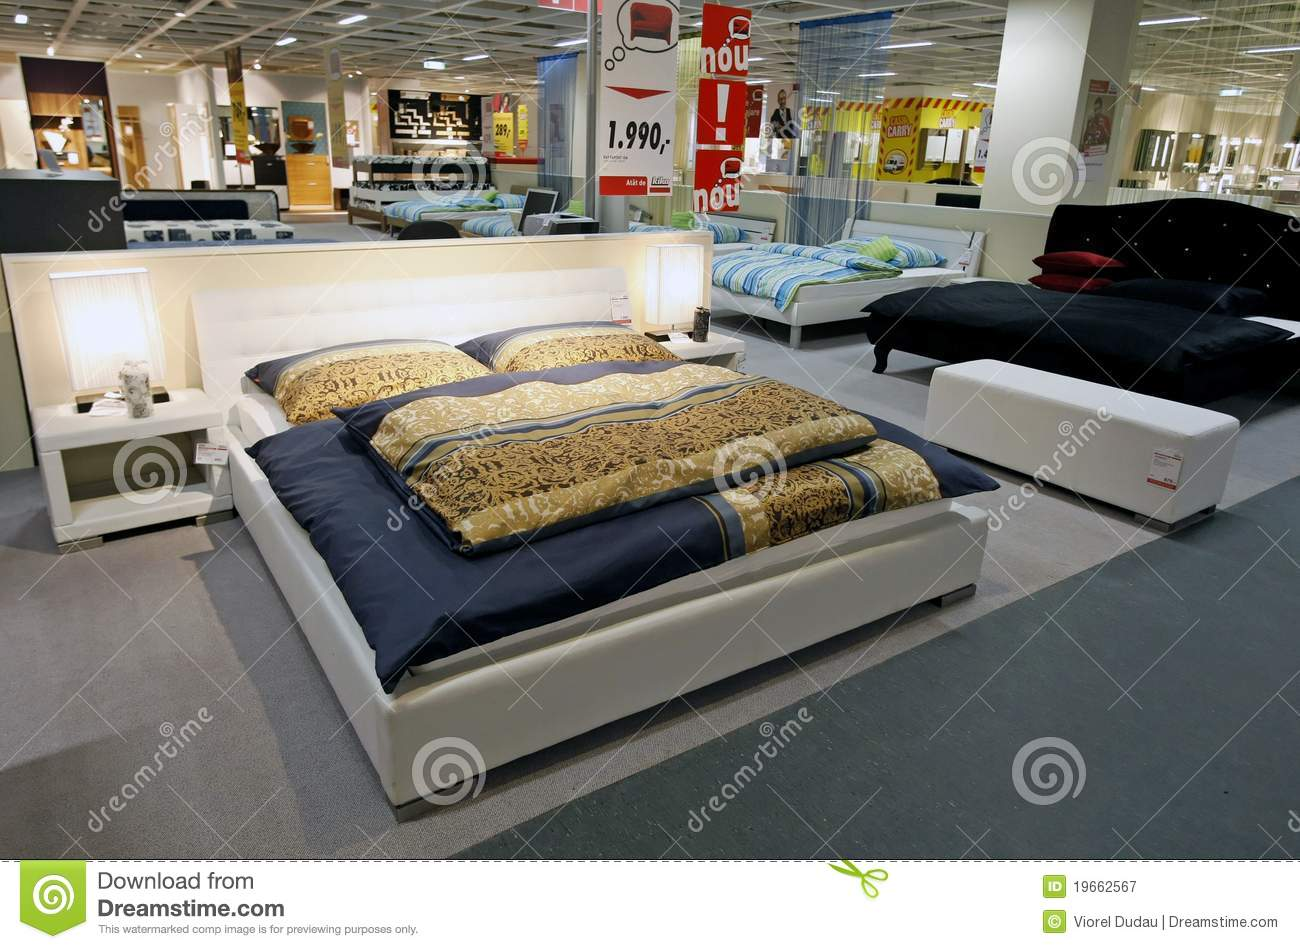 Ordinaire Large King Size Beds In Furniture Store